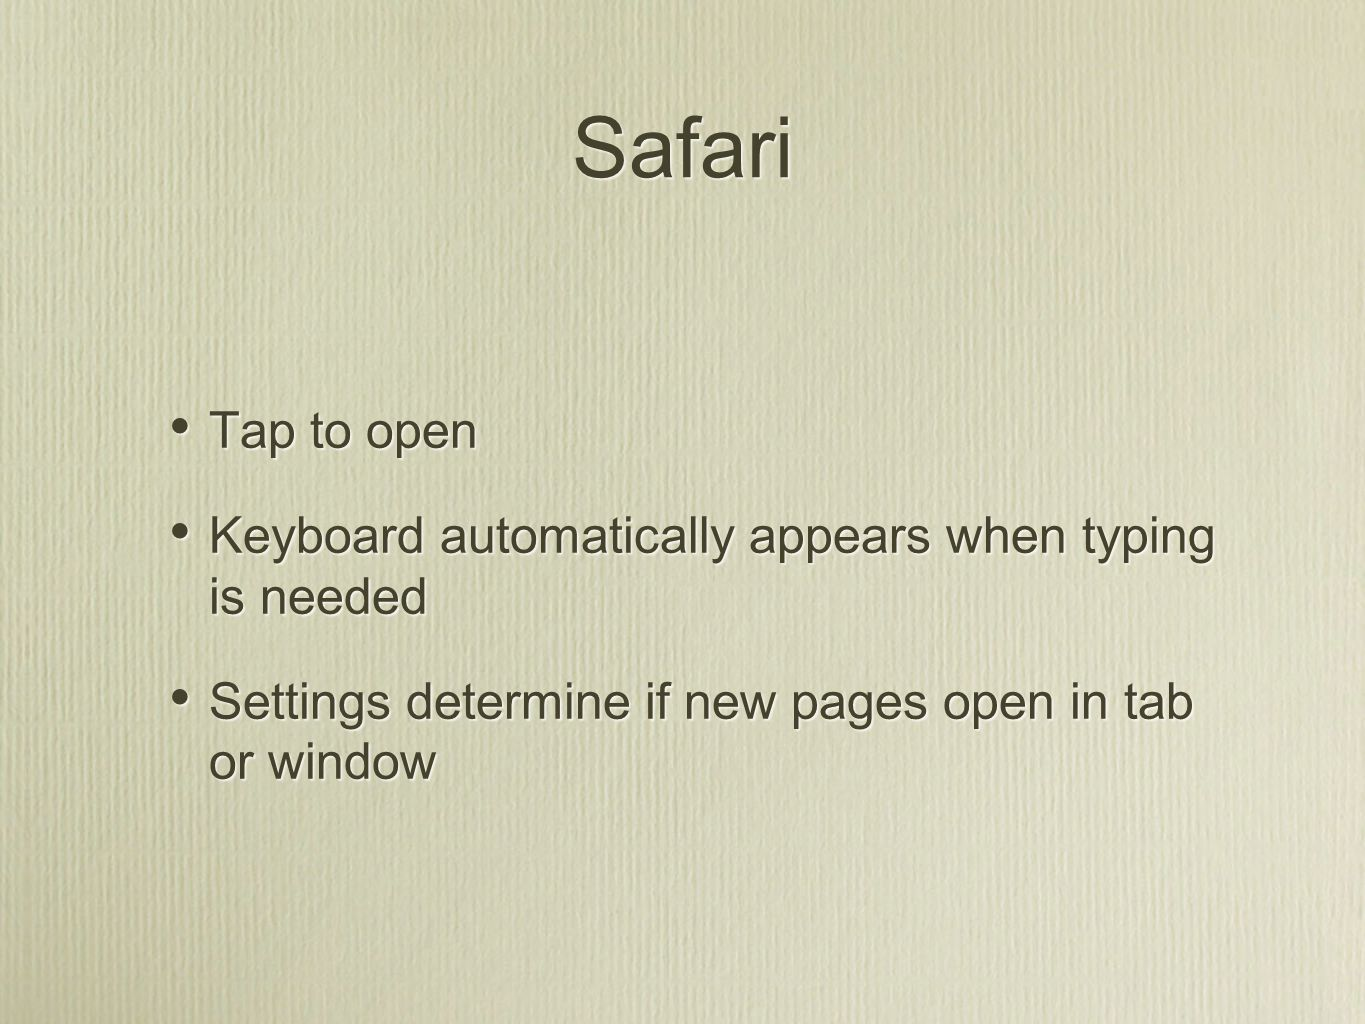 Safari Tap to open Keyboard automatically appears when typing is needed Settings determine if new pages open in tab or window Tap to open Keyboard automatically appears when typing is needed Settings determine if new pages open in tab or window